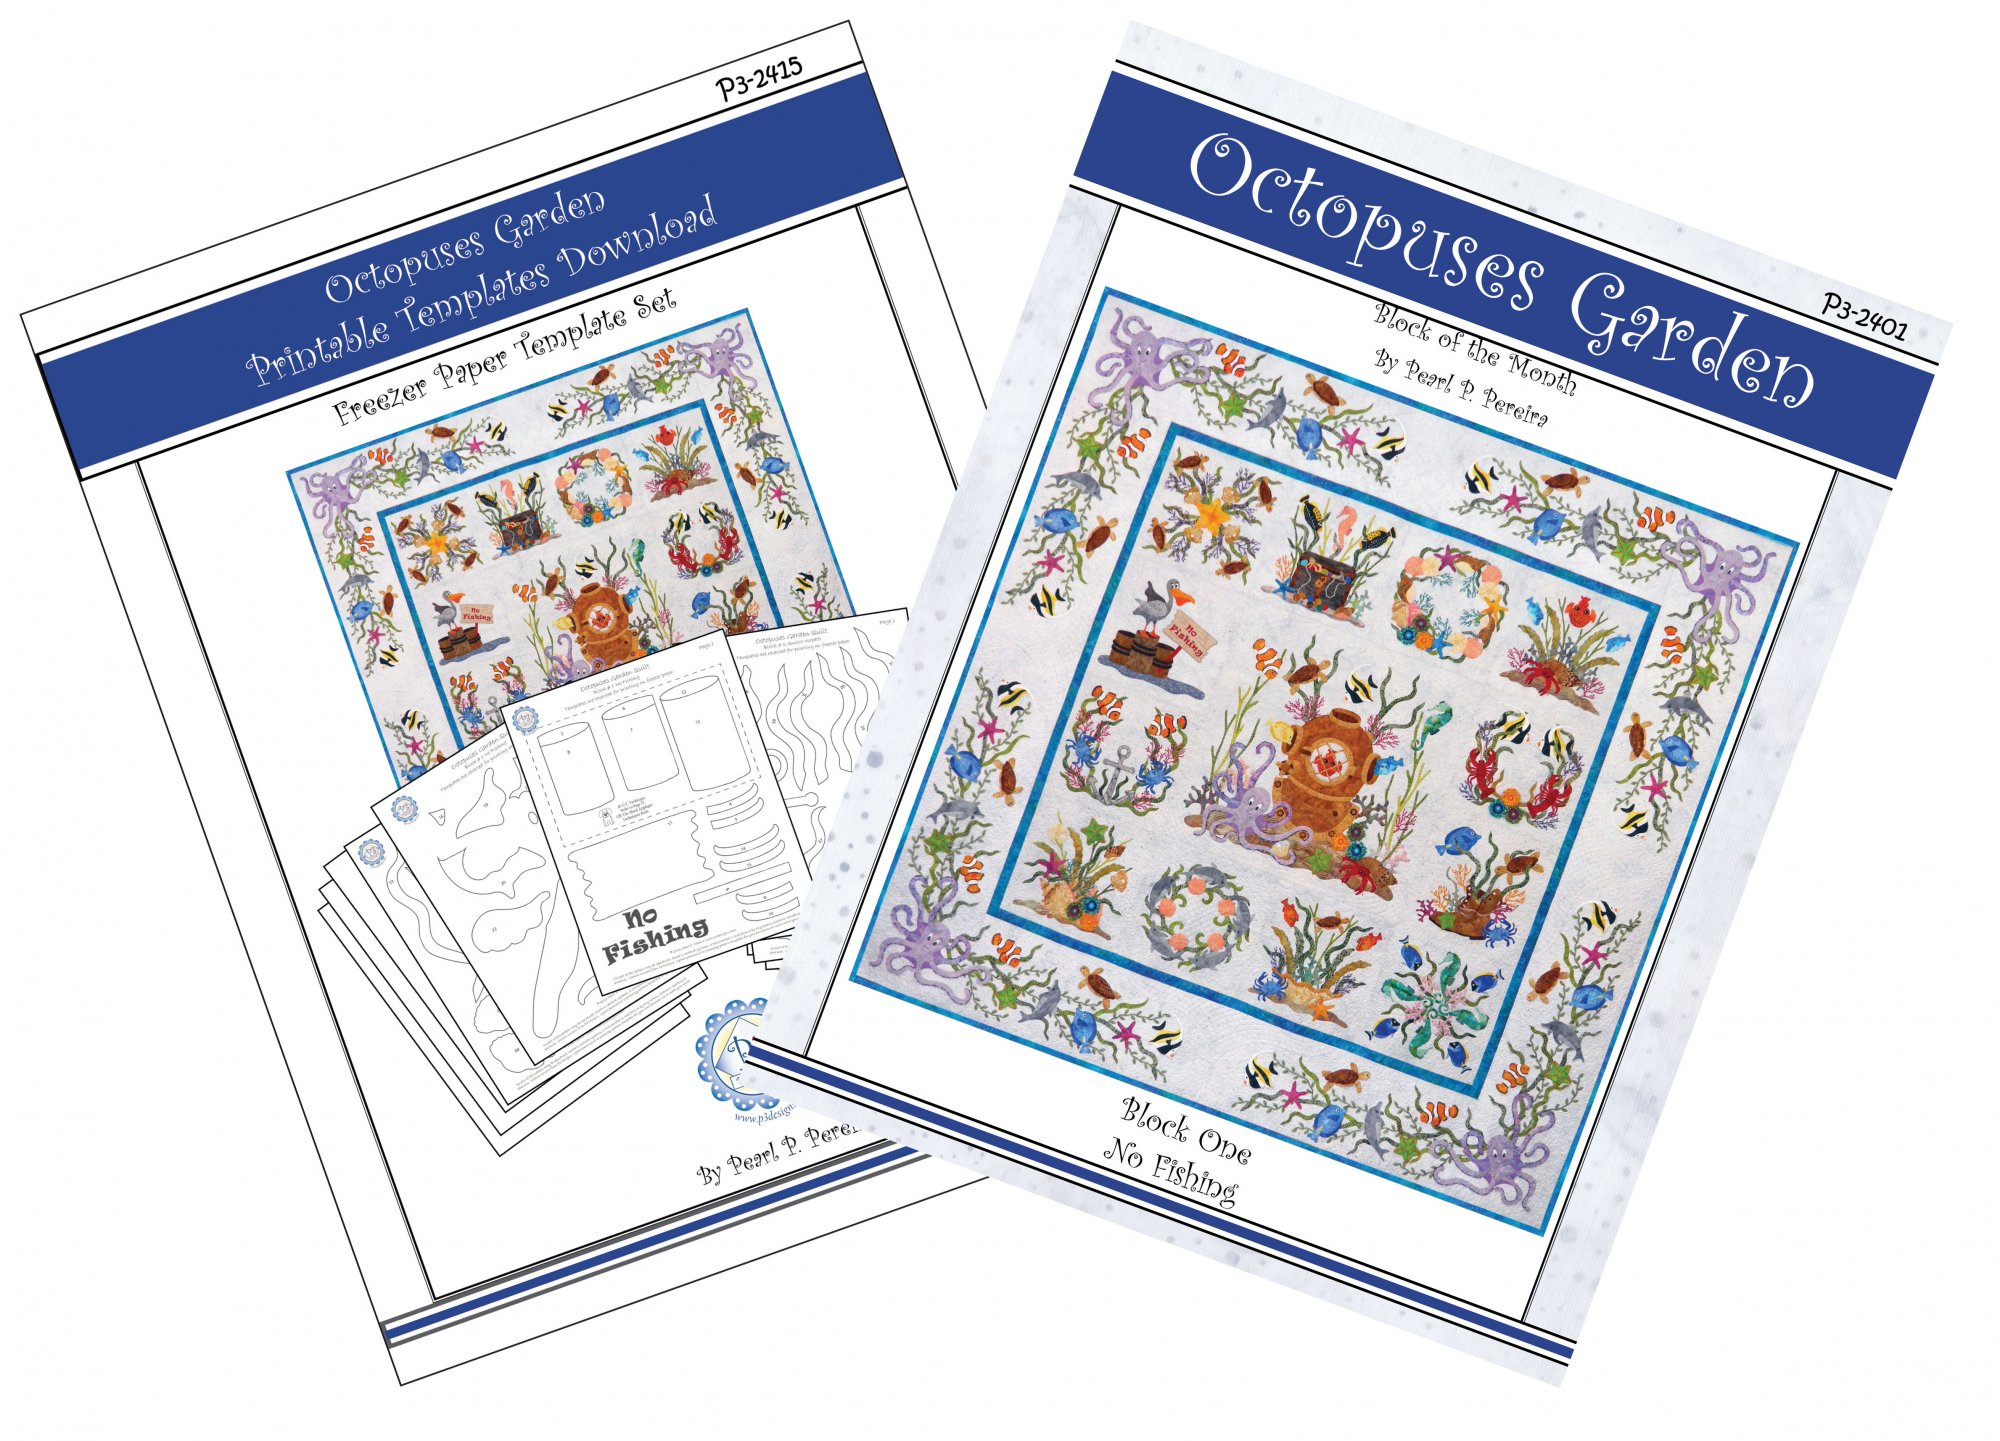 P3-2400-1 Octopuses Garden Pattern & Companion Template PDF Download